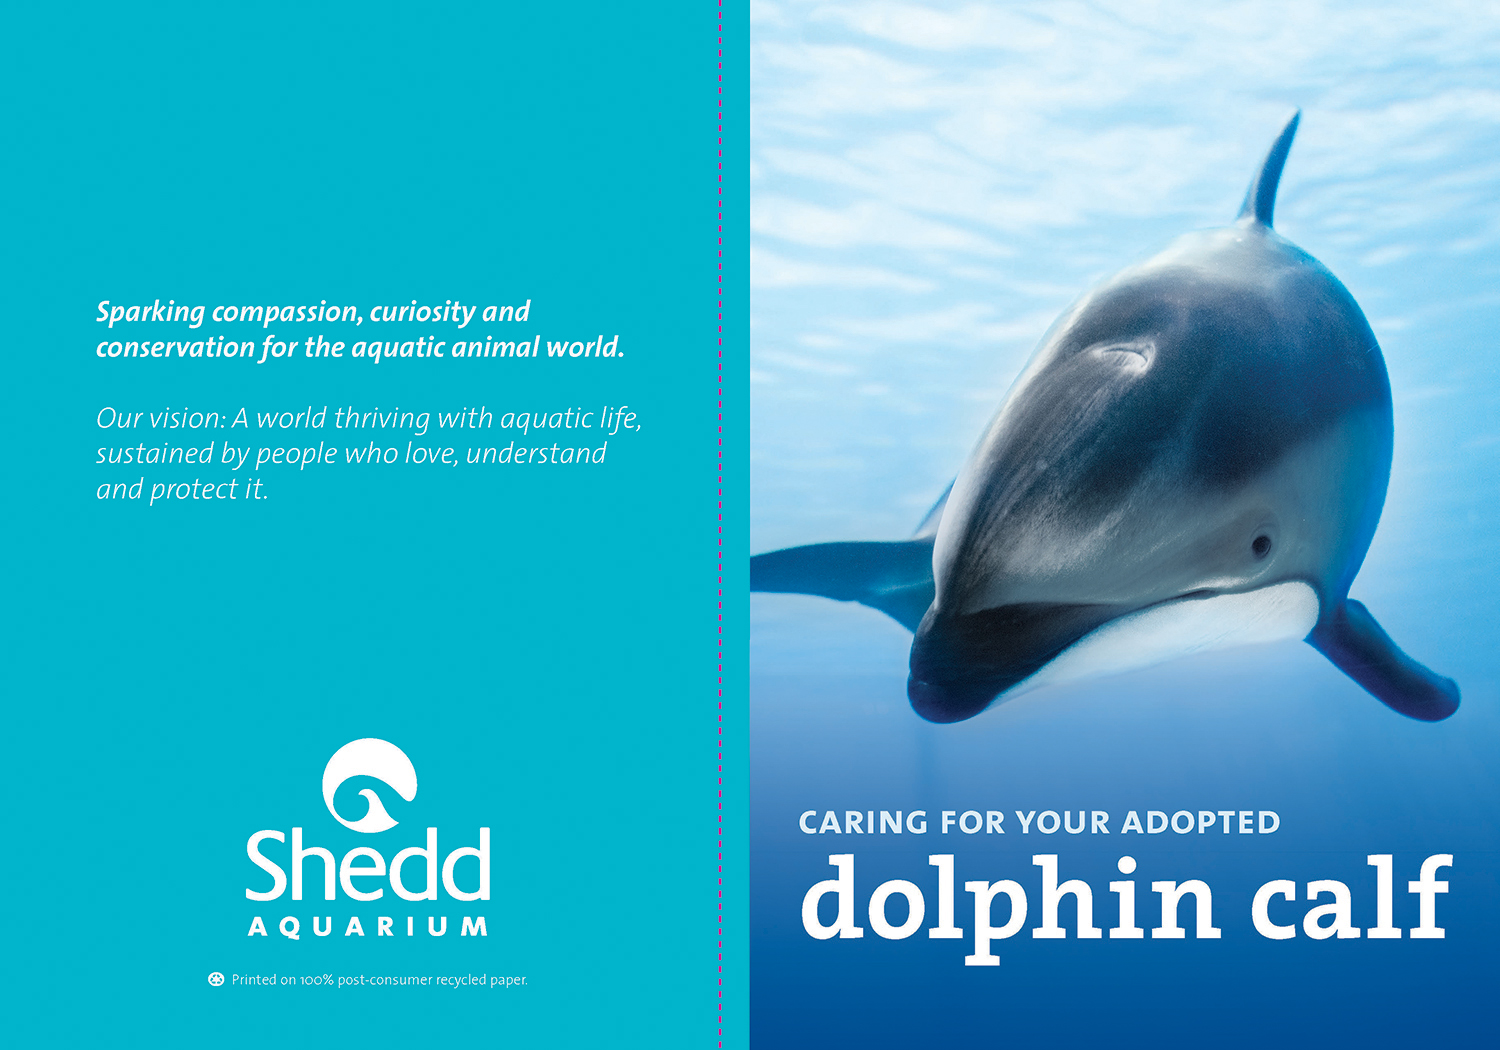 The cover spread for an adopt booklet. A photo of a dolphin fills the cover, with the text 'Caring for your adopted dolphin calf' overlaid. On the back fo the booklet is Shedd's mission statement and logo over a teal background.